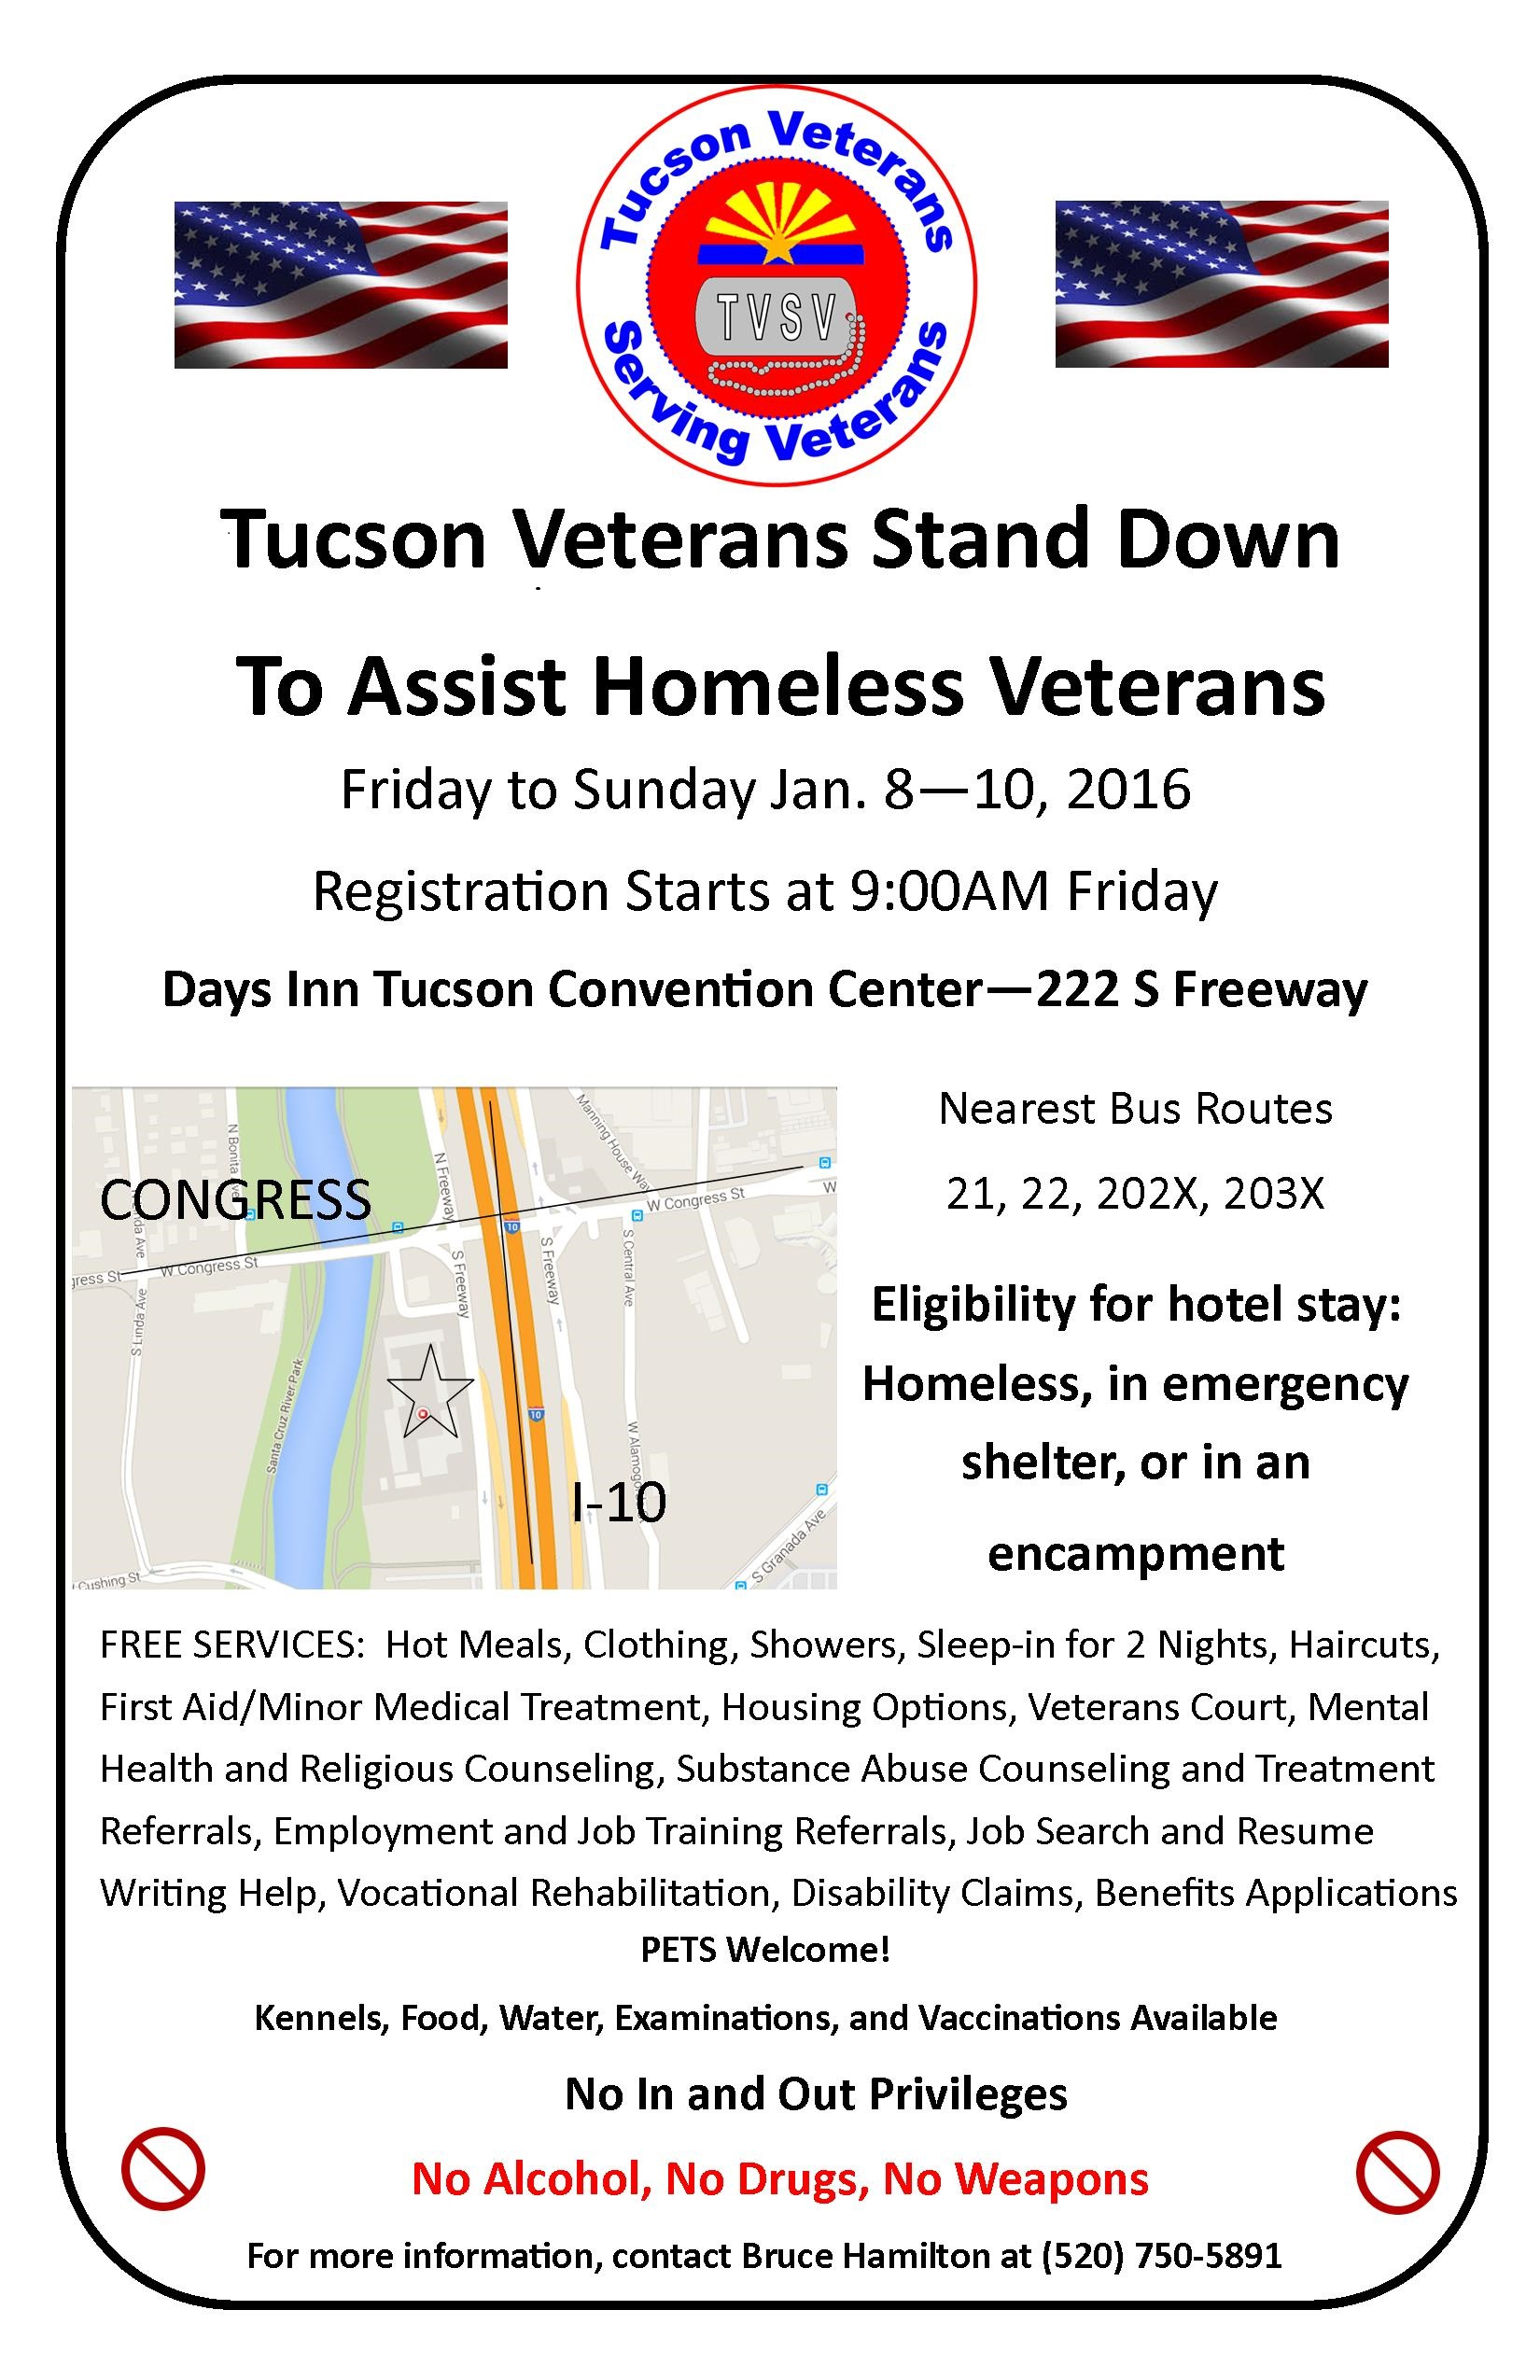 Veterans First Ltd Tuscon Veterans Stand Down To Assist